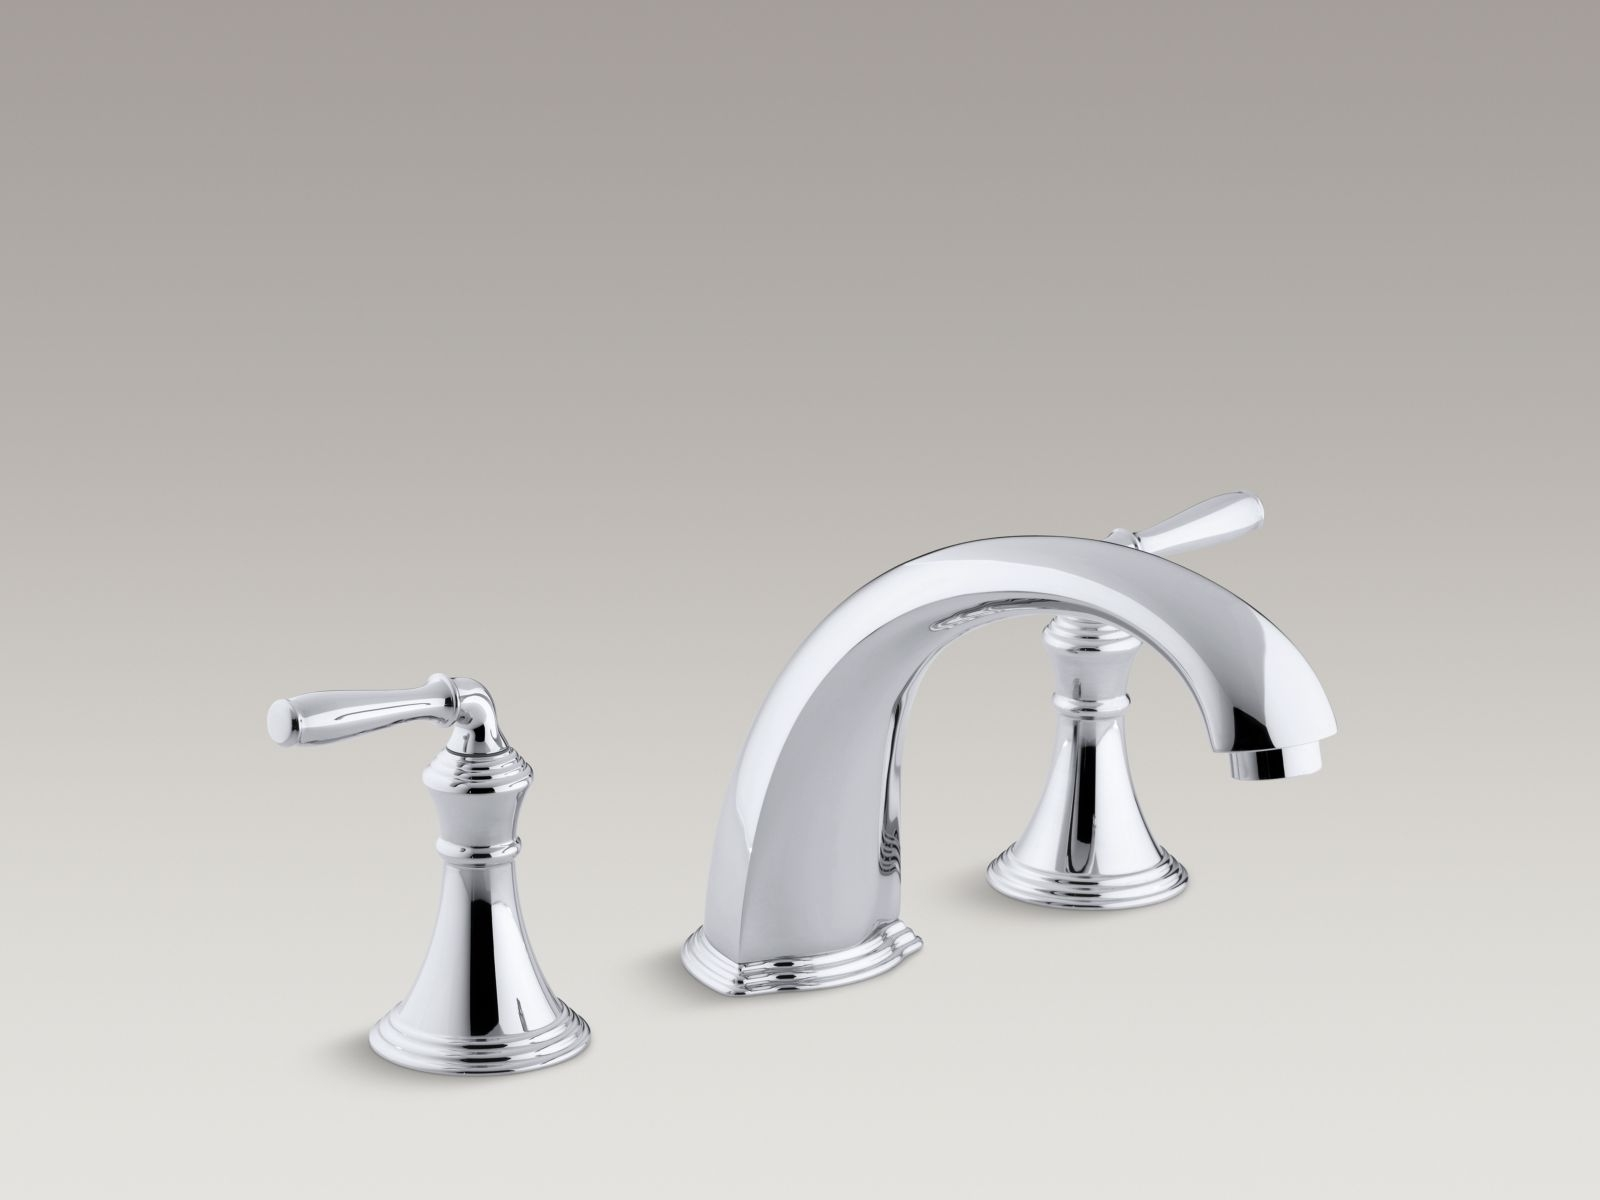 Ideas, kohler stillness lav faucet kohler stillness lav faucet buyplumbing category bathtub filler 1600 x 1200  .